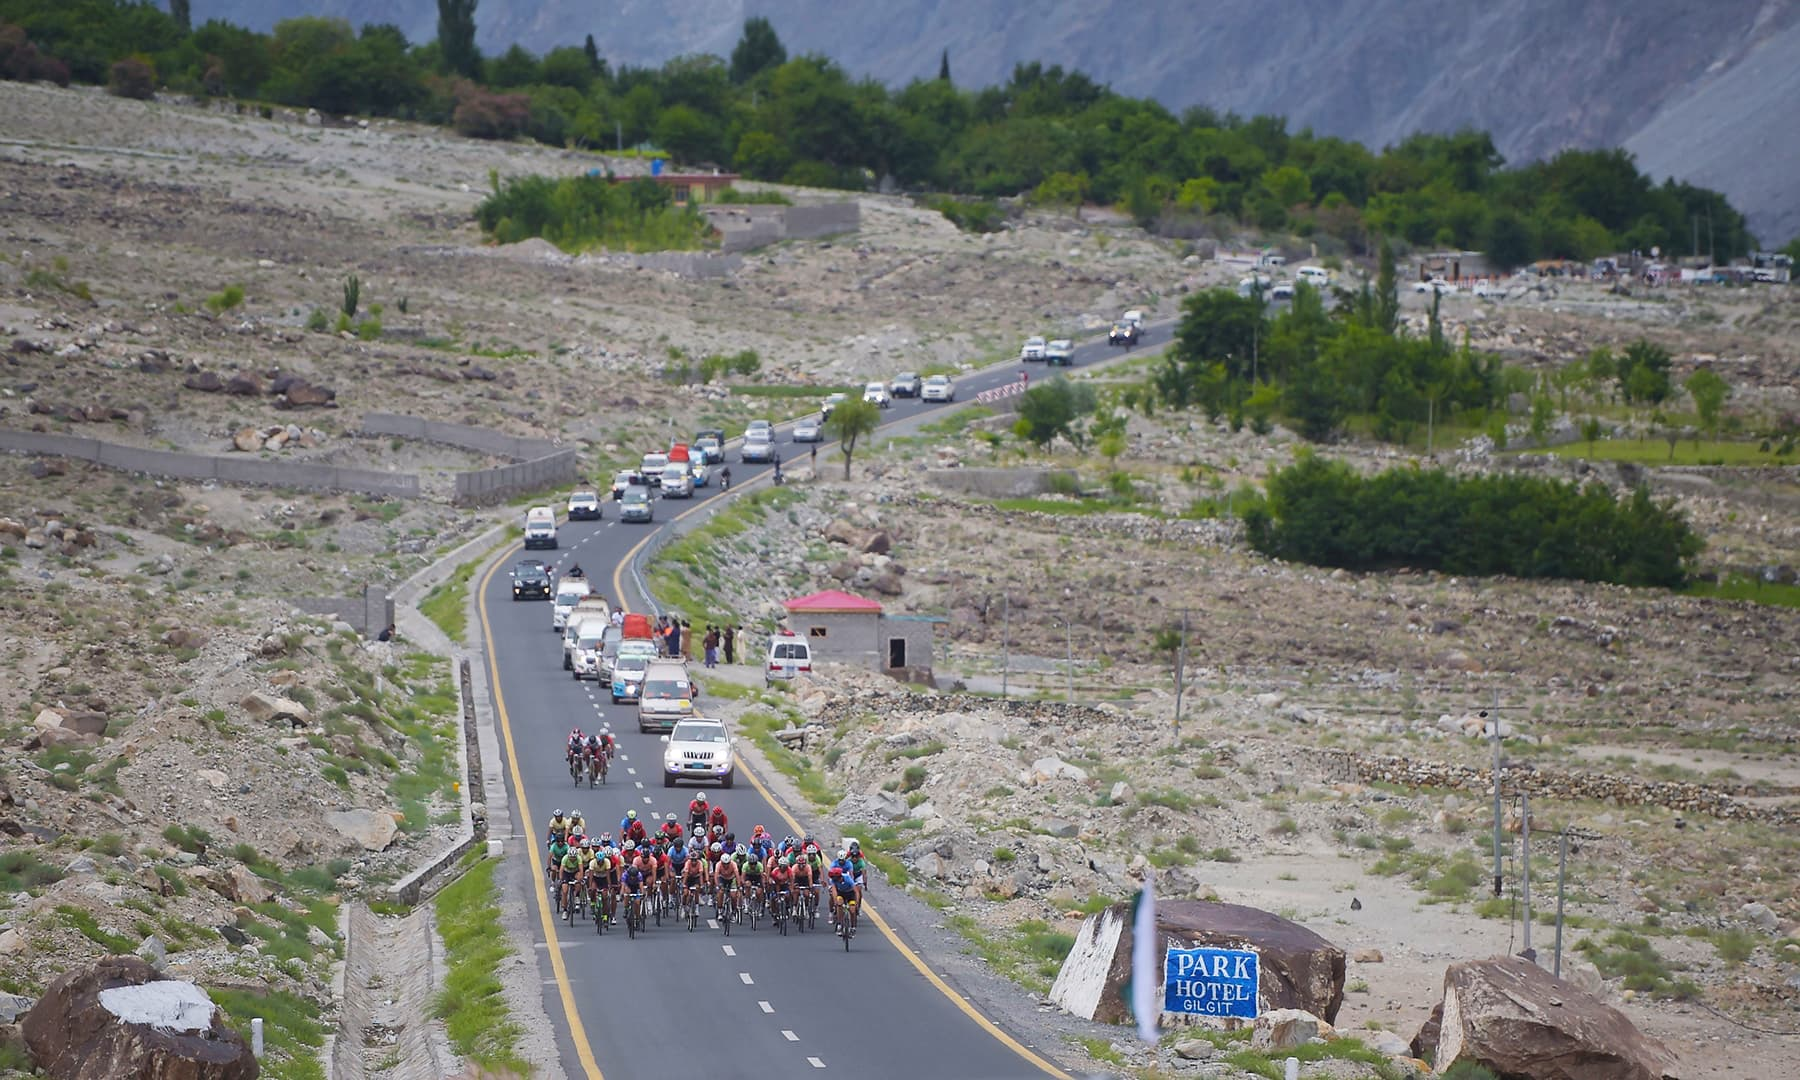 In this picture taken on June 27, Pakistani and international cyclists take part in Tour de Khunjrab cycling race on Karakoram Highway near Gilgit city. — AFP